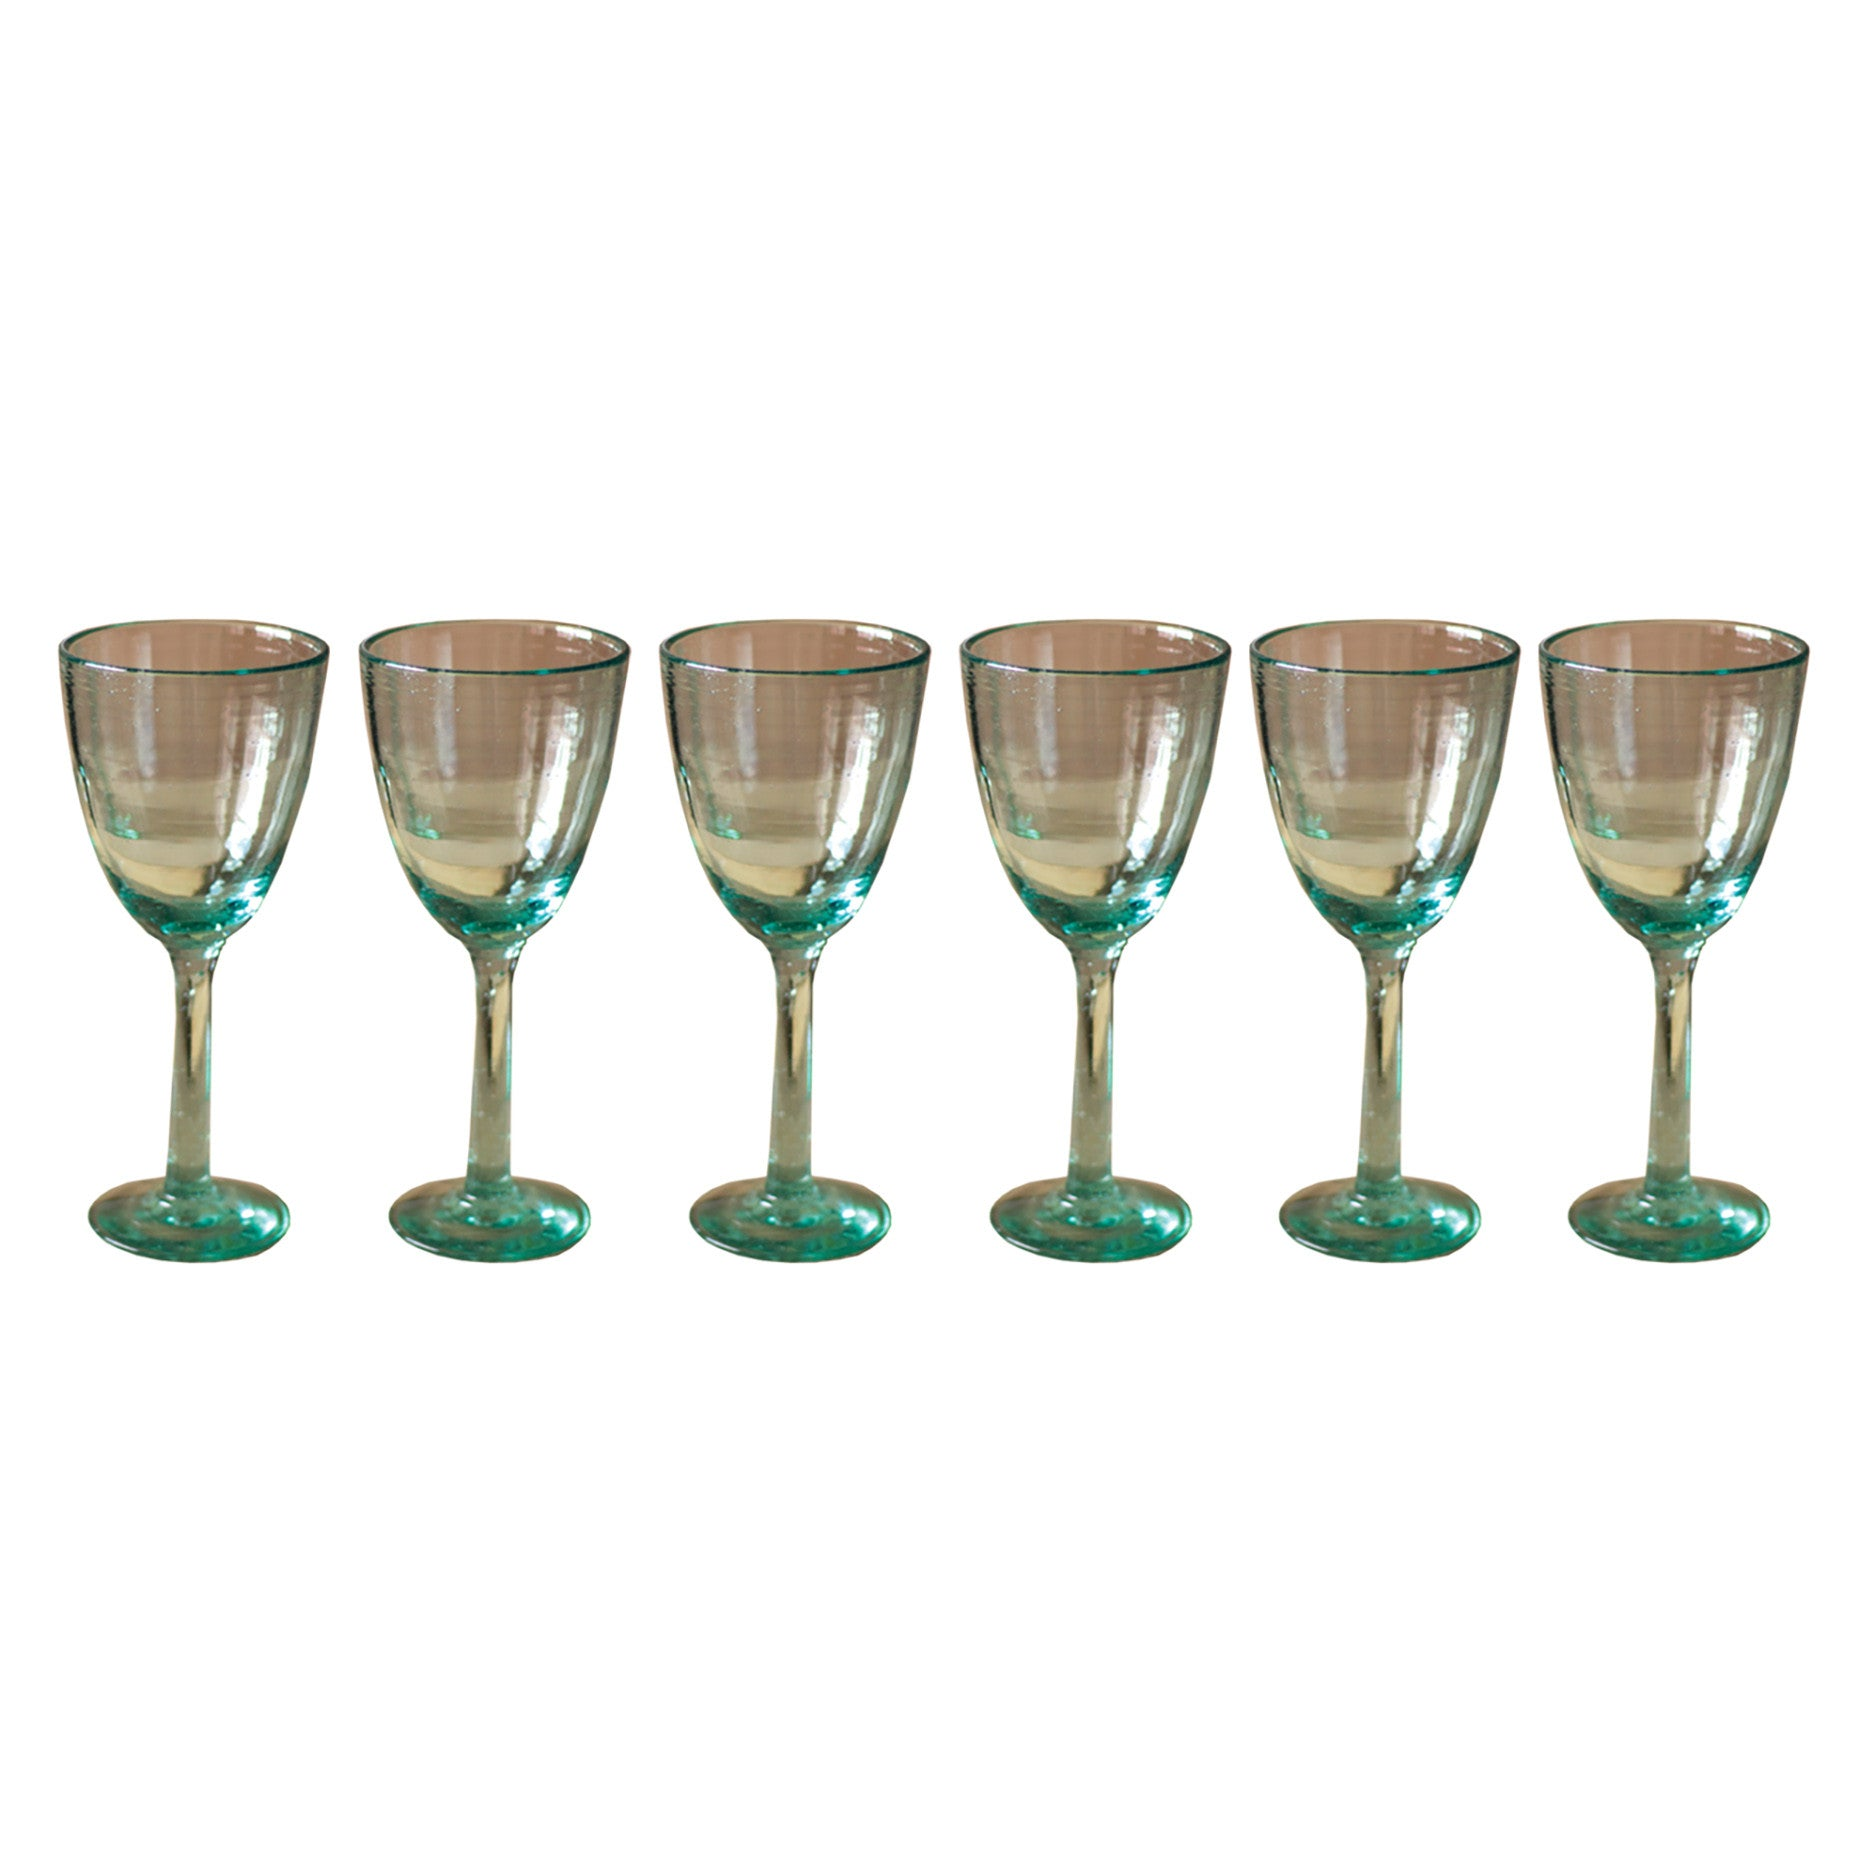 Set of Six Recycled Glass Wine Glasses